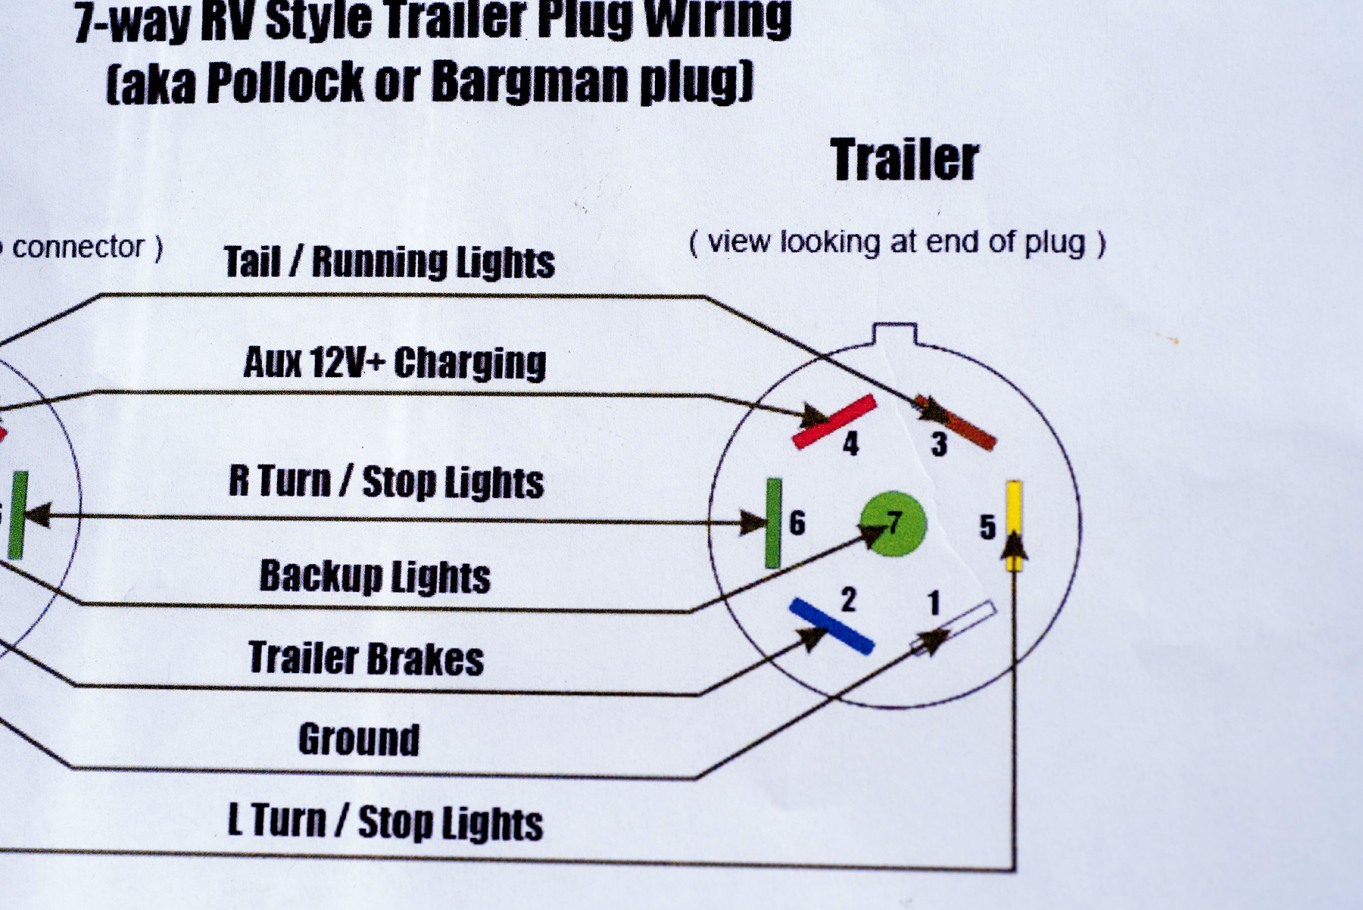 trailer plug wiring 7 pin round trailer plug wiring diagram jeep7 round trailer plug diagram to 4 wire flat wiring diagramtrailer 4 pin flat wiring diagram